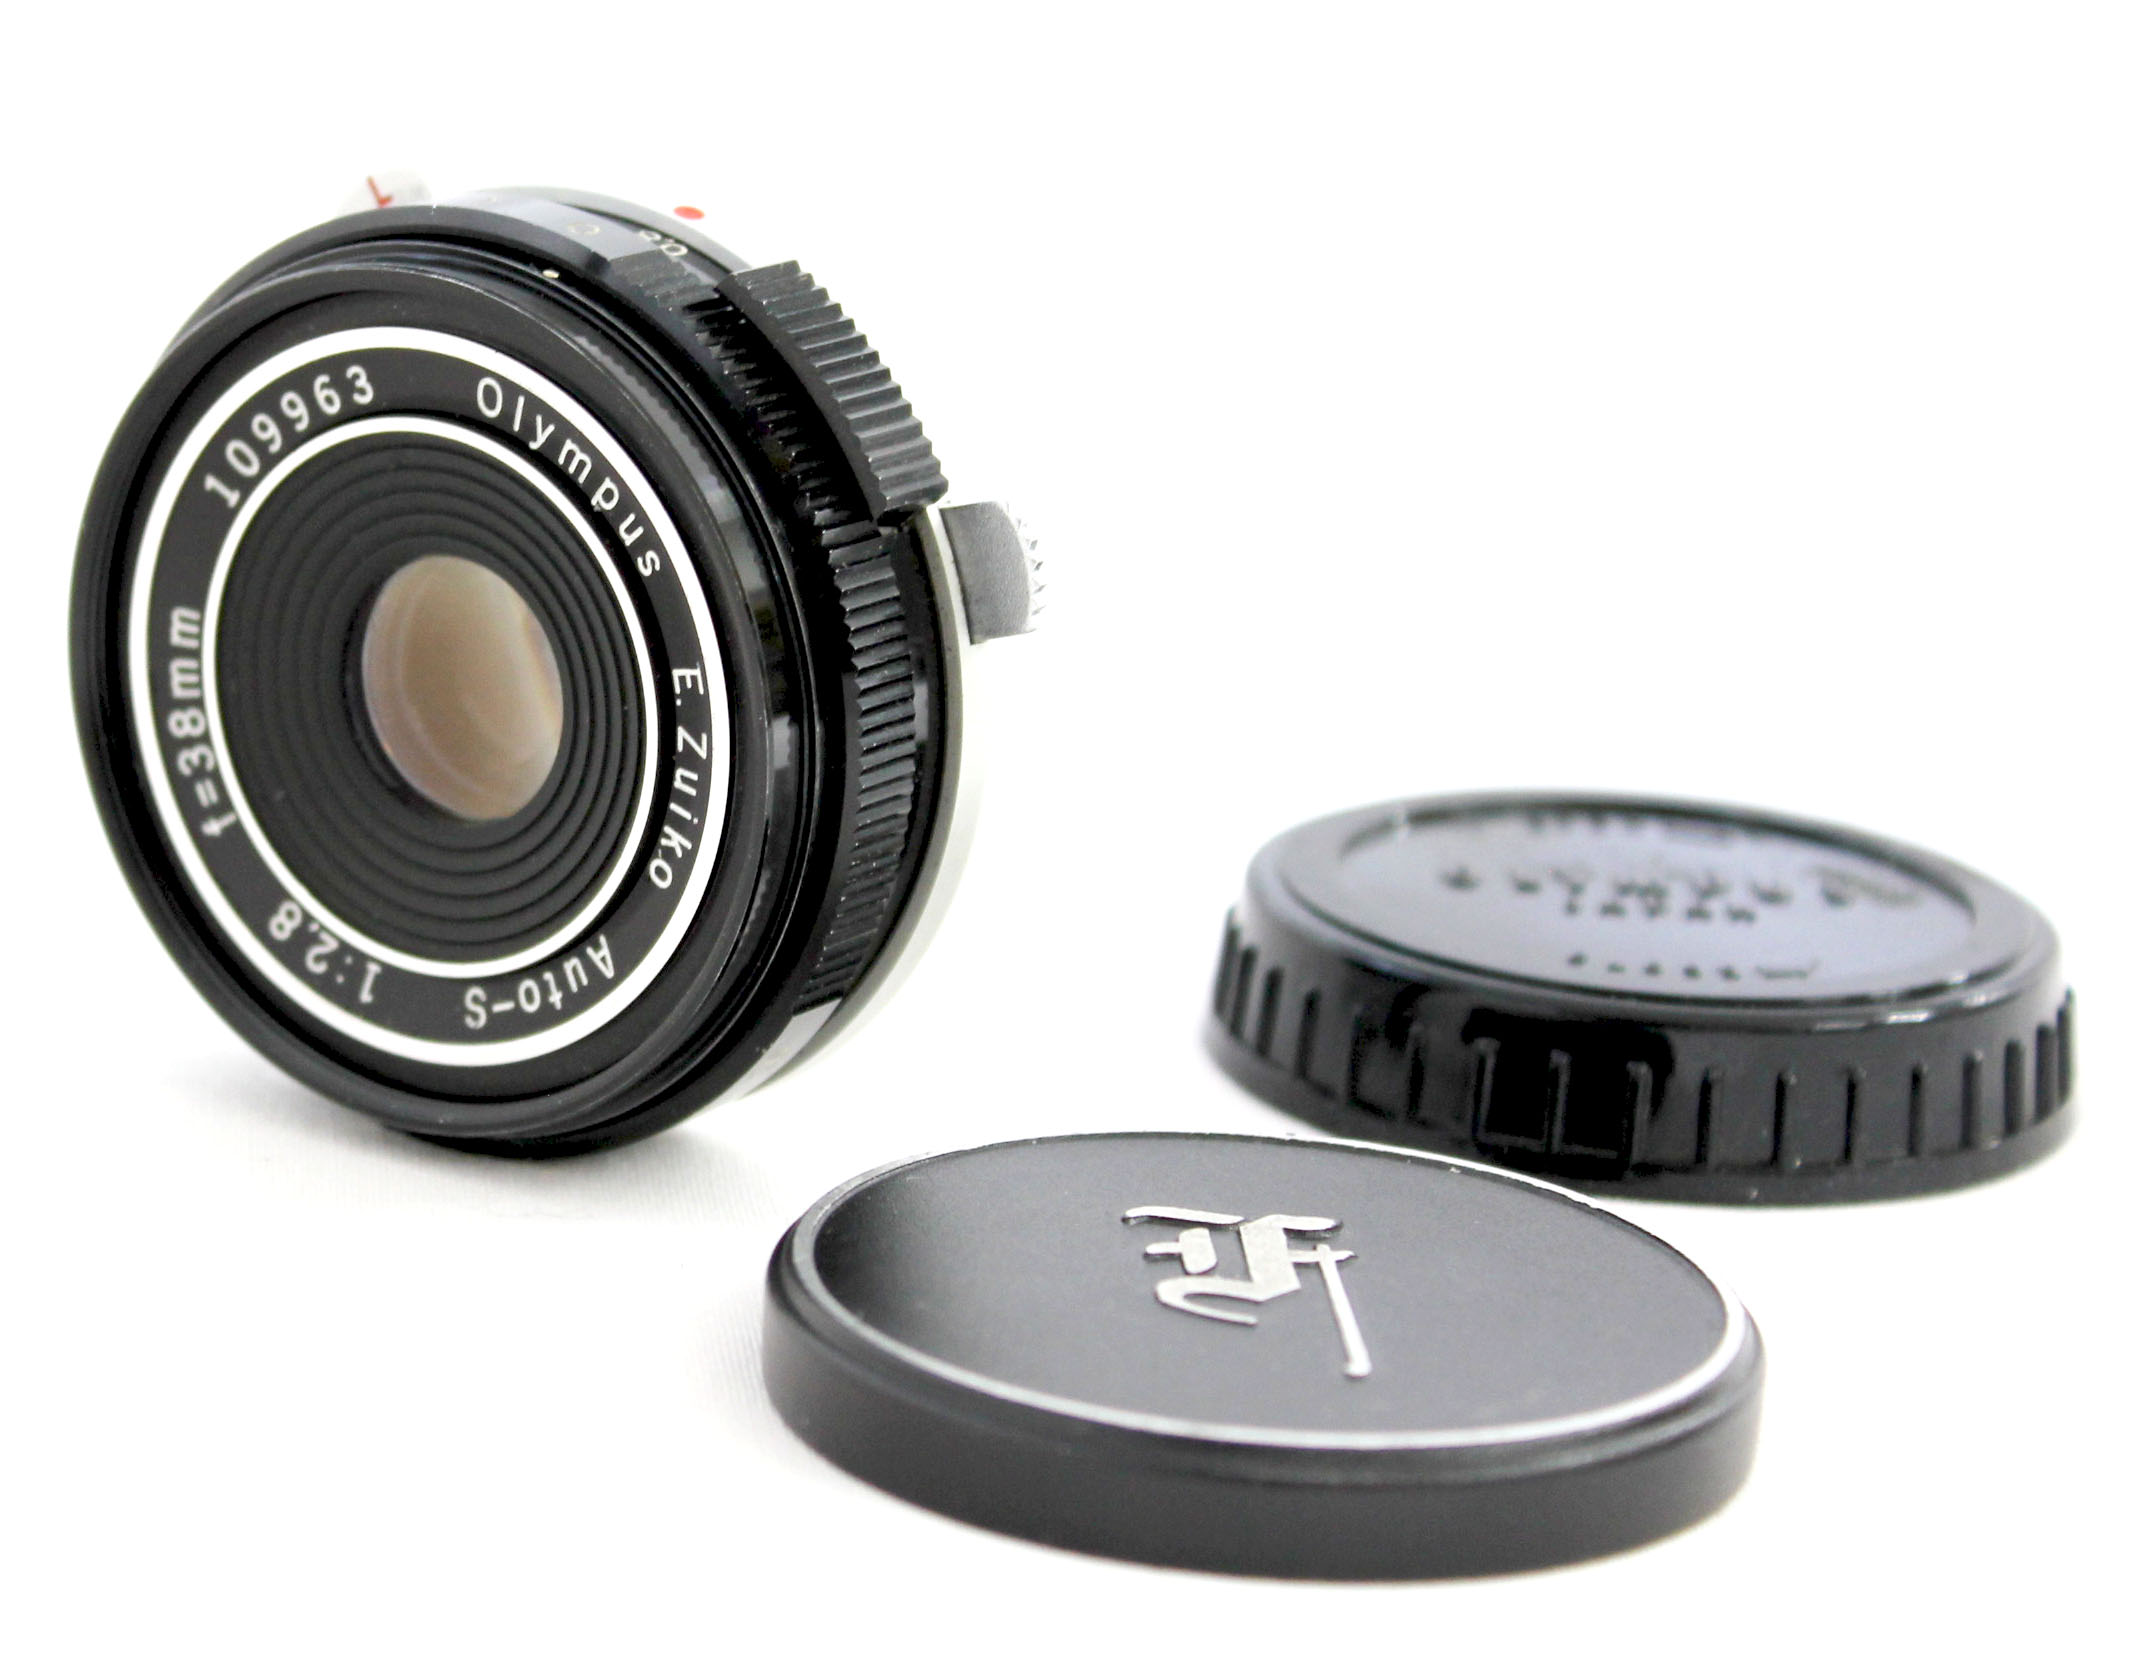 Japan Used Camera Shop | [Near Mint] Olympus E.Zuiko Auto-S 38mm F/2.8 Pancake Lens for PEN F FT from Japan